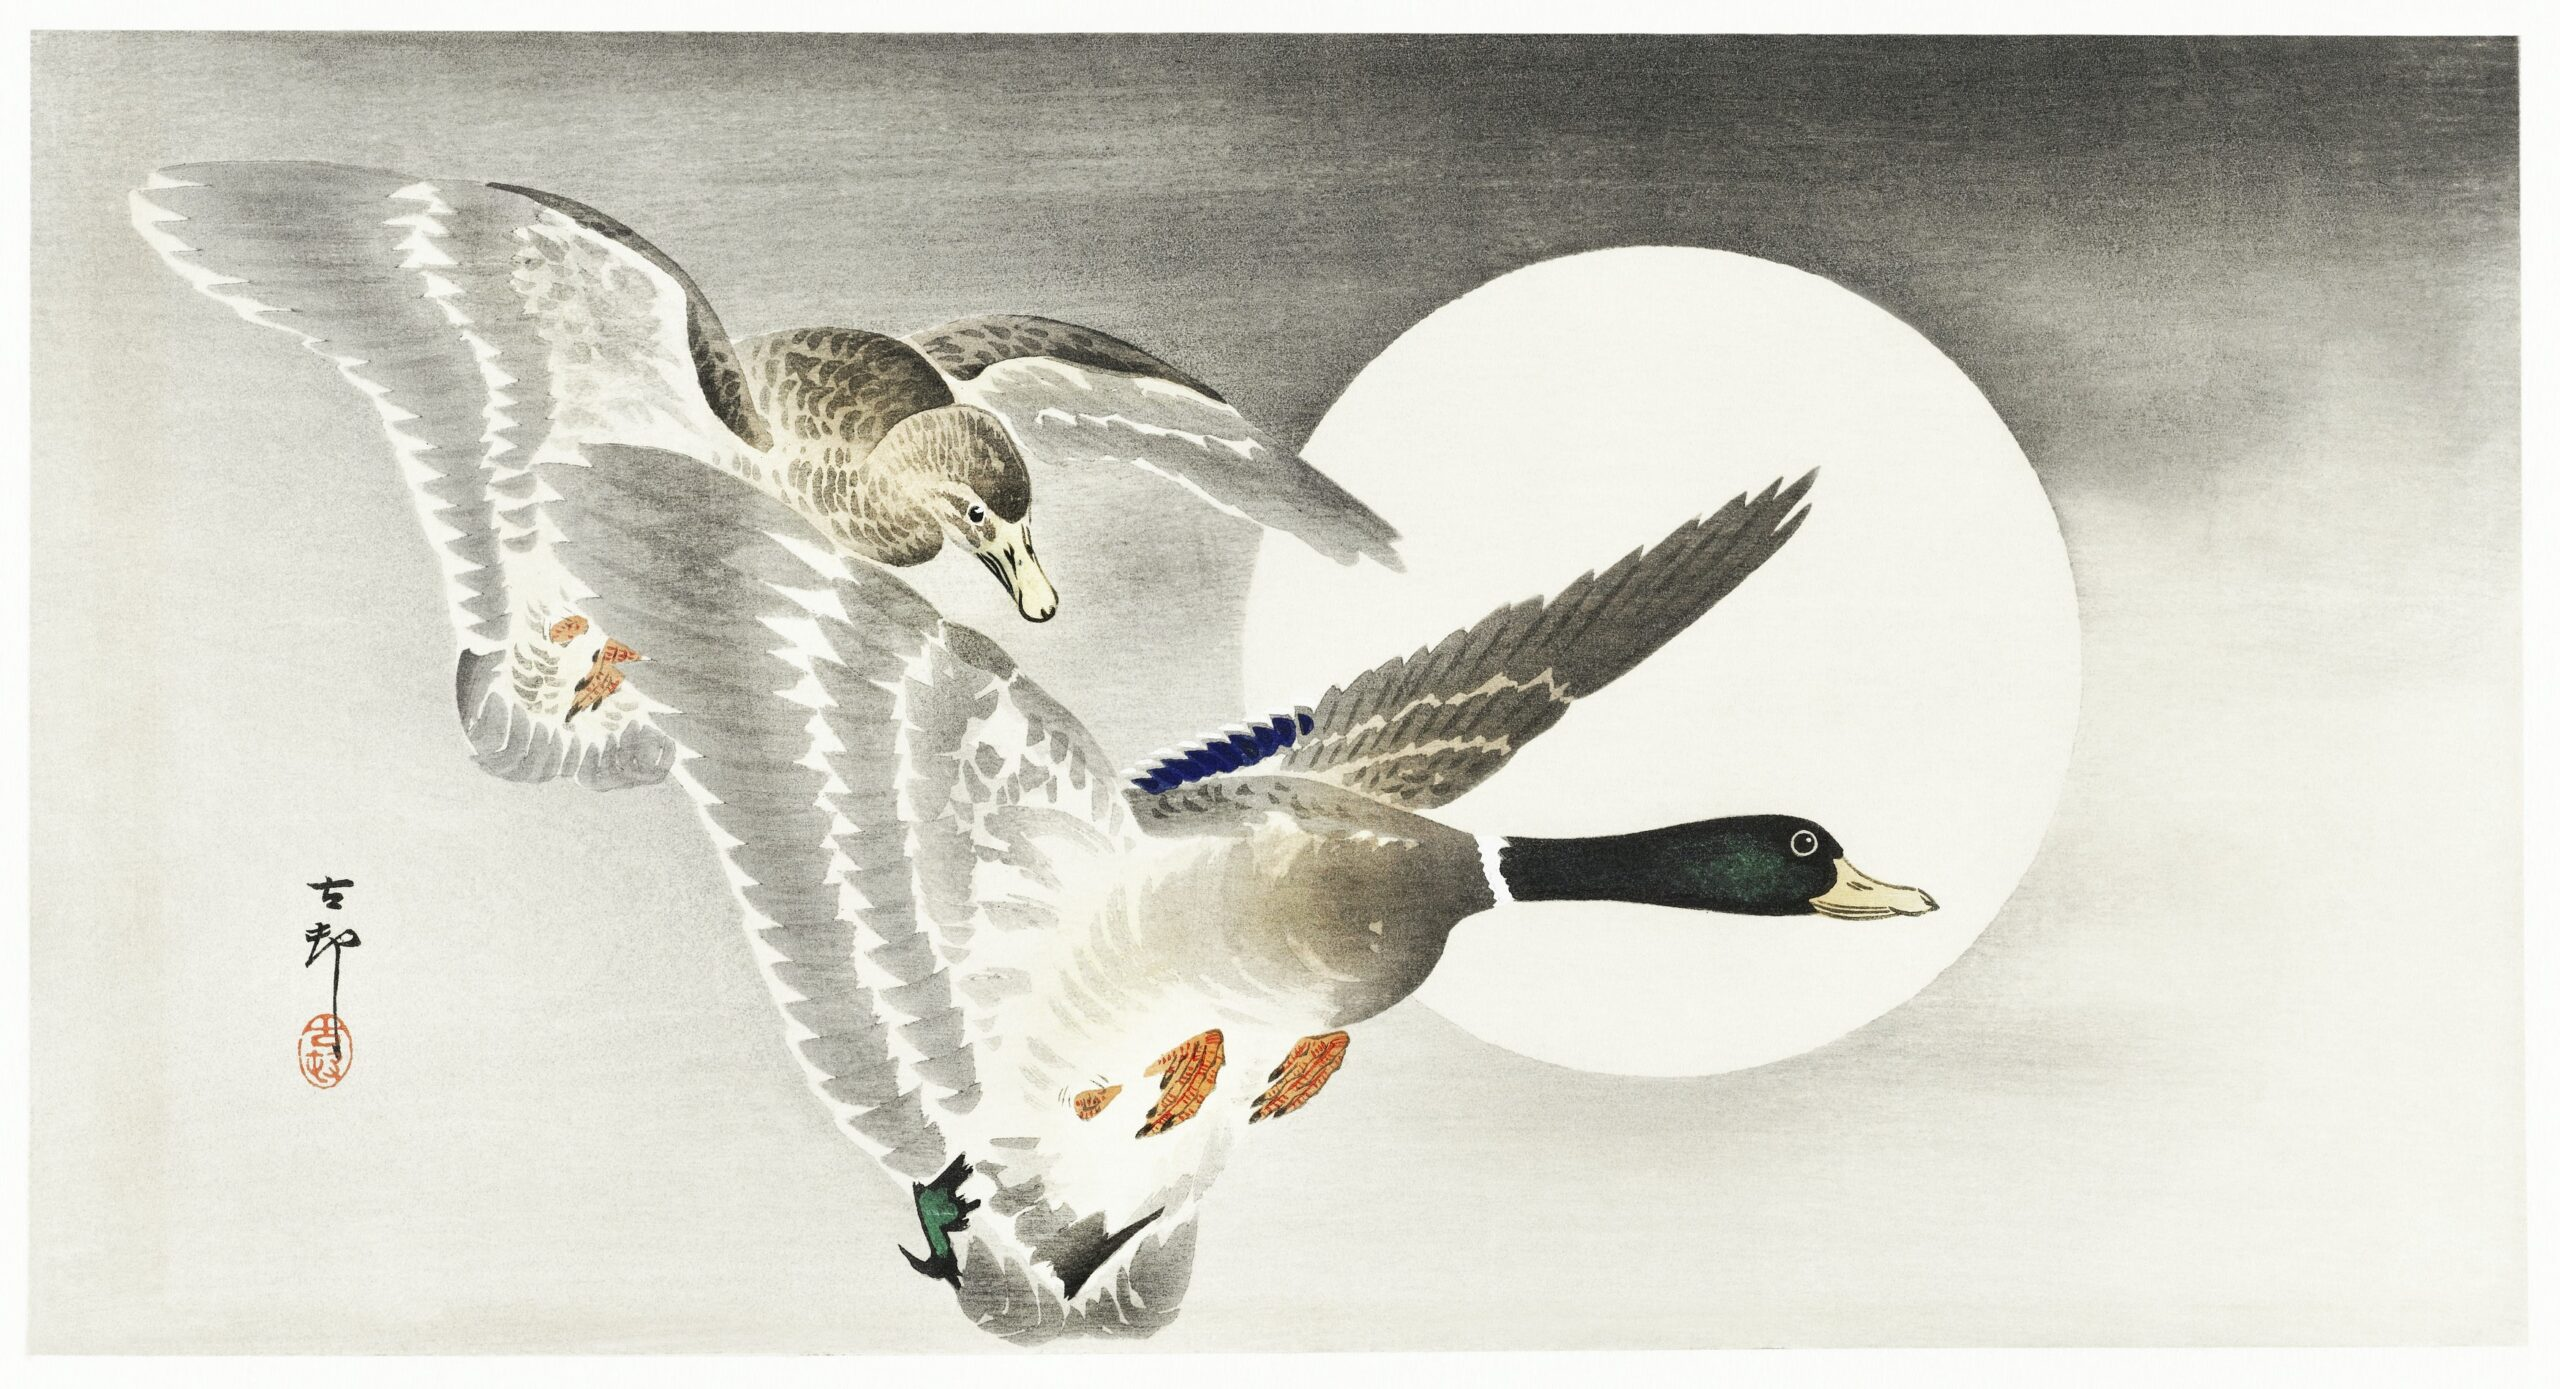 Two ducks at full moon (1900 - 1930) by Ohara Koson (1877-1945). Original from The Rijksmuseum. Digitally enhanced by rawpixel.